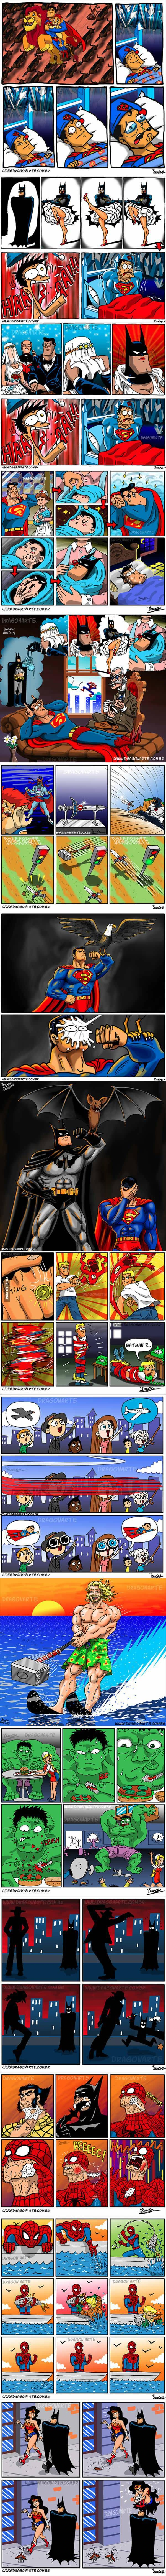 The Funniest Superhero Comics Collection